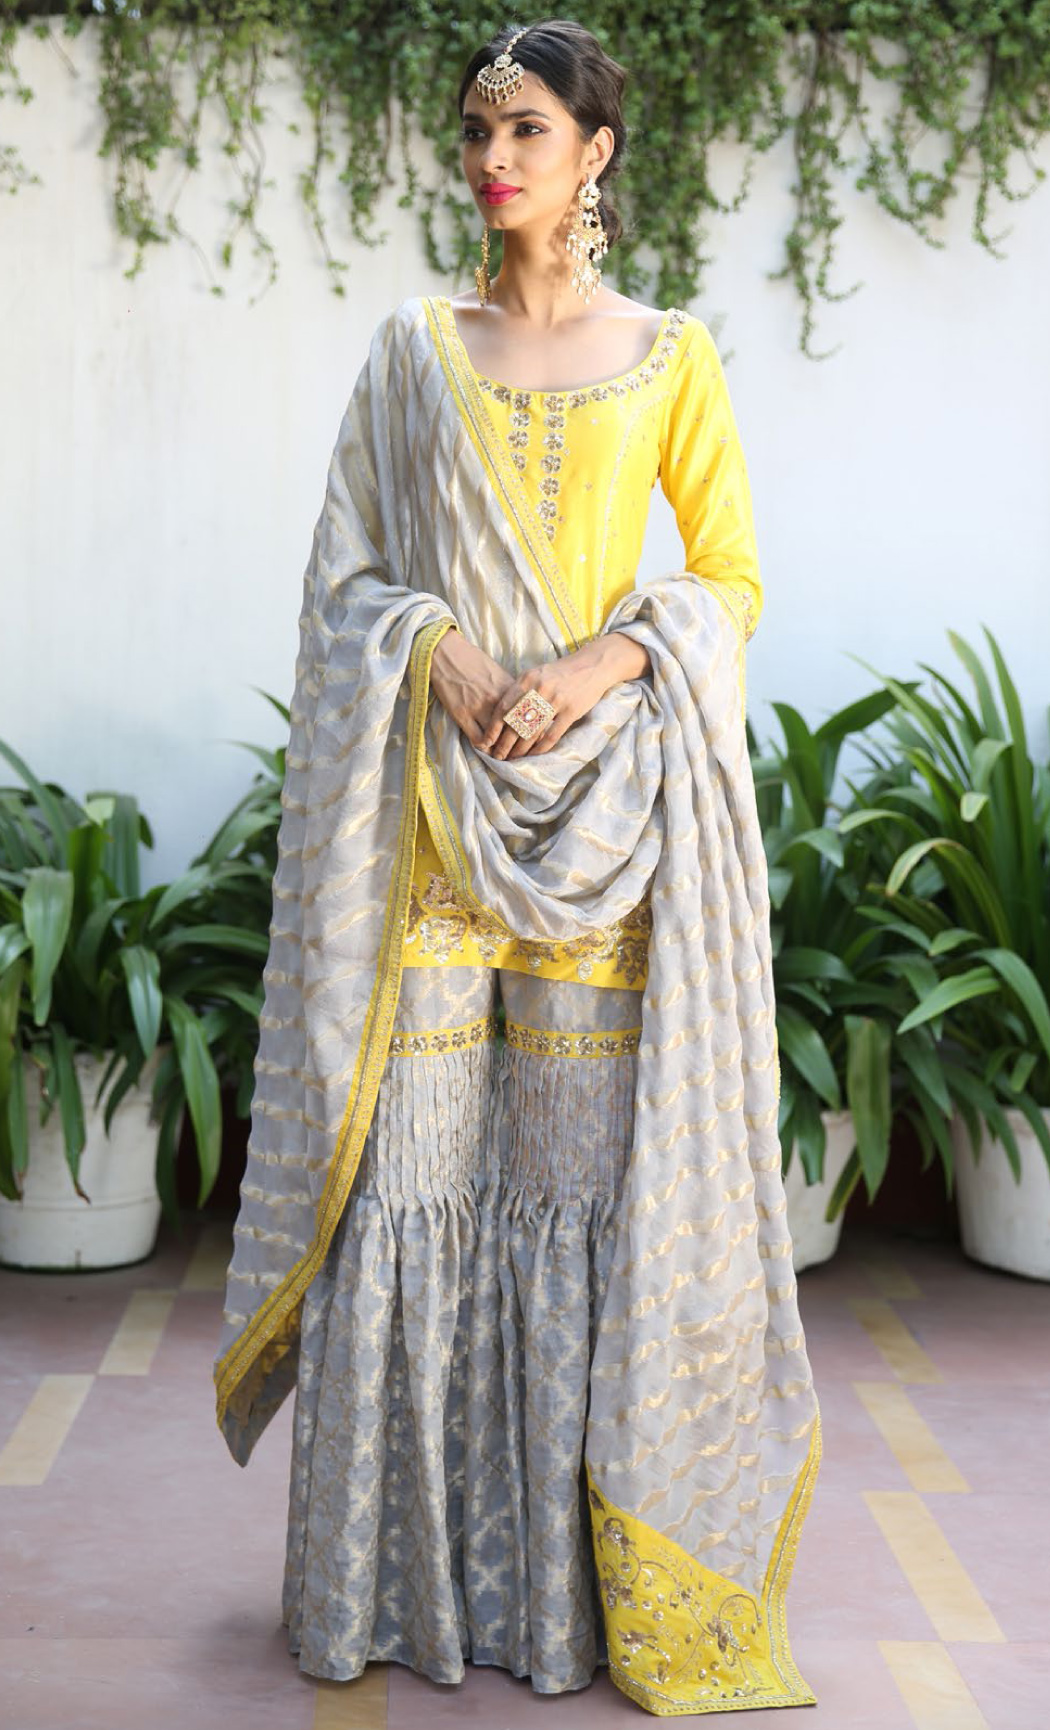 Sunflower Yellow Kurta and Ash Grey Gharara Set